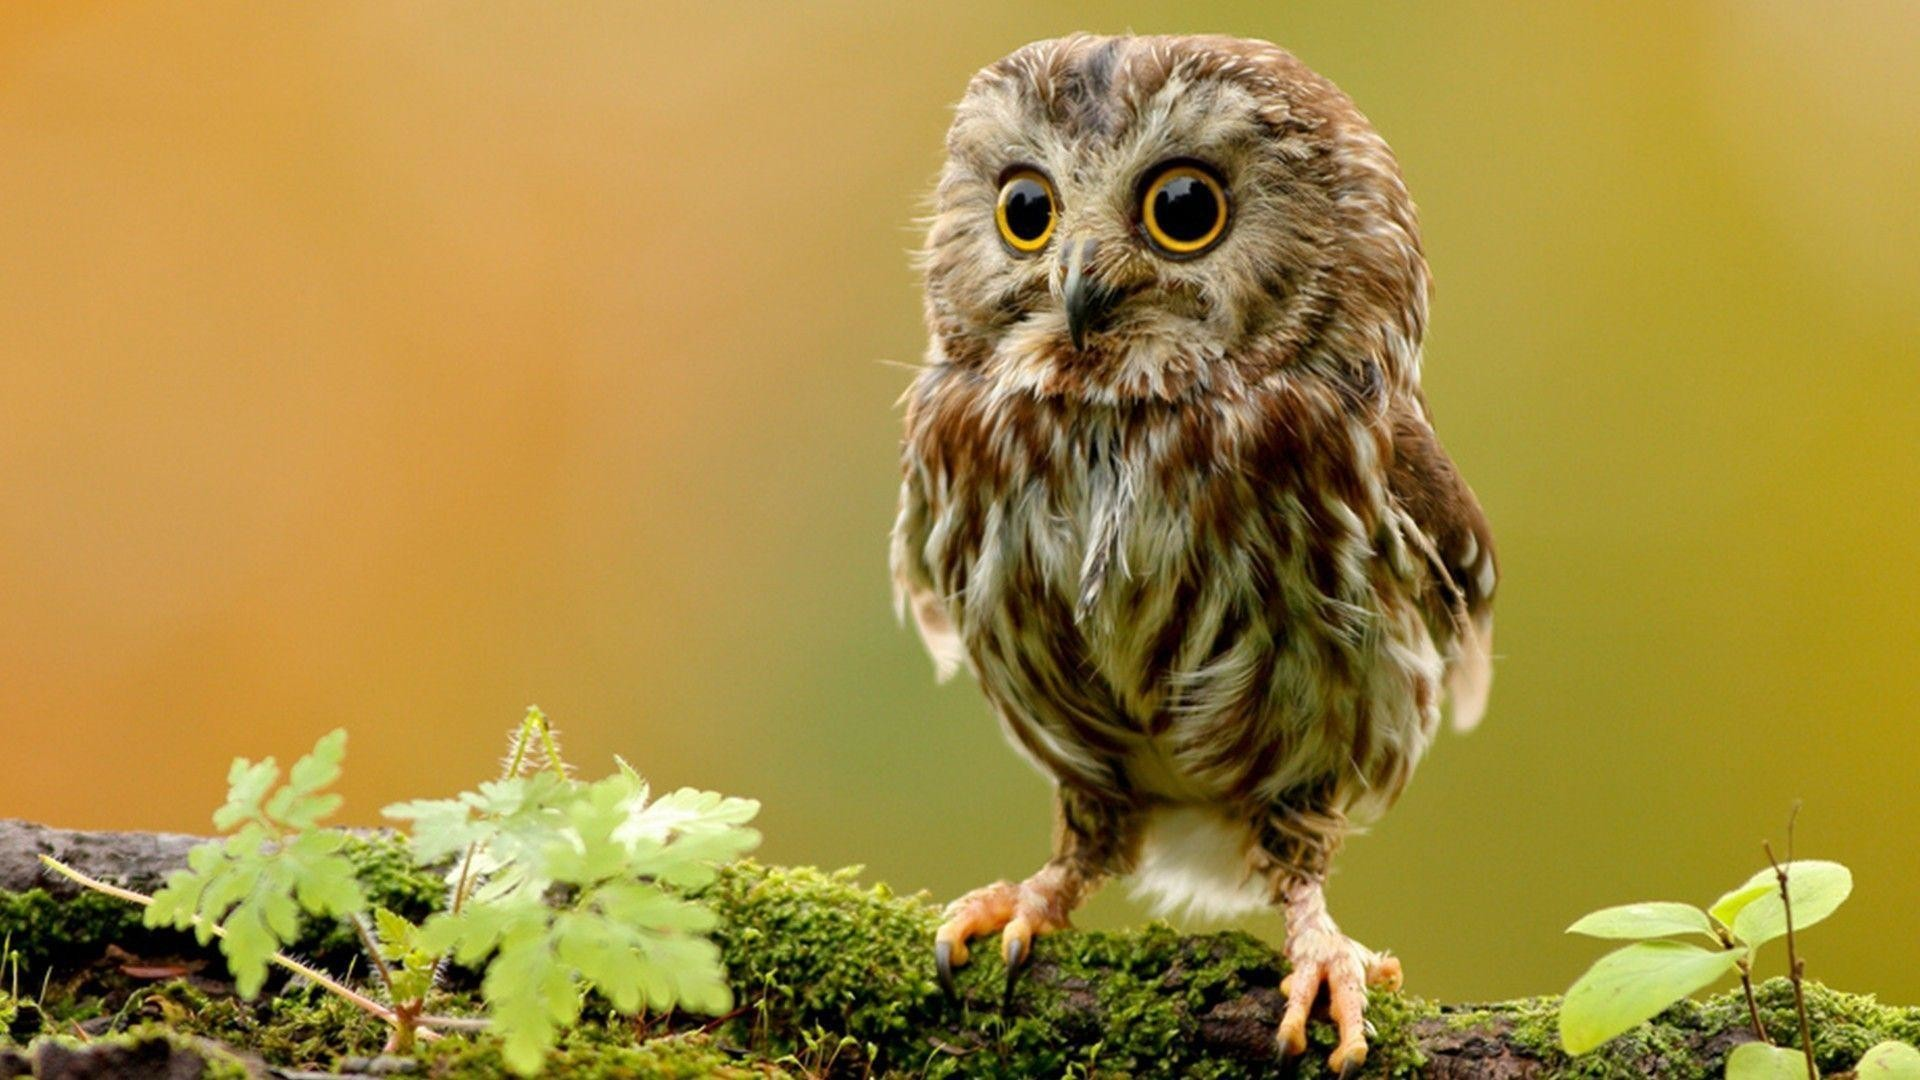 Cute owl wallpaper 1920x1080 cute owl wallpaper download wallpapers voltagebd Image collections